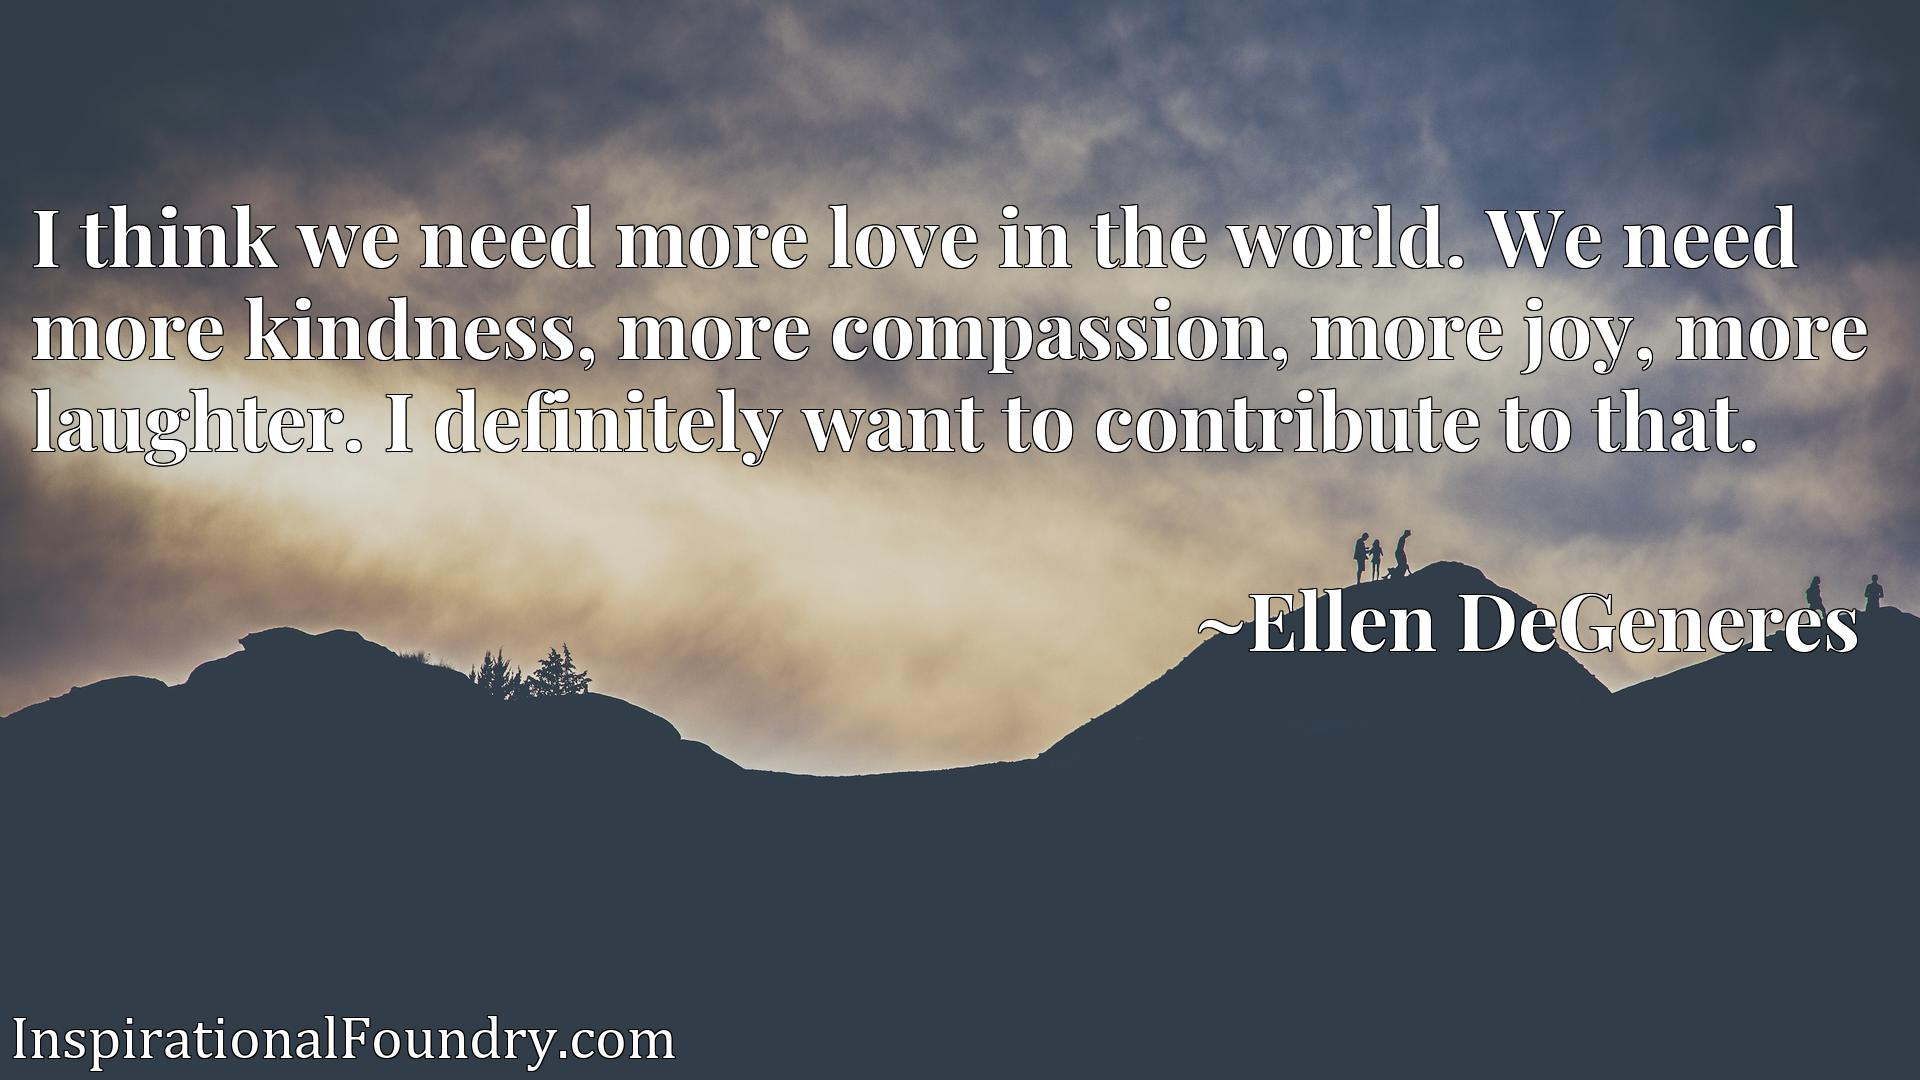 I think we need more love in the world. We need more kindness, more compassion, more joy, more laughter. I definitely want to contribute to that.